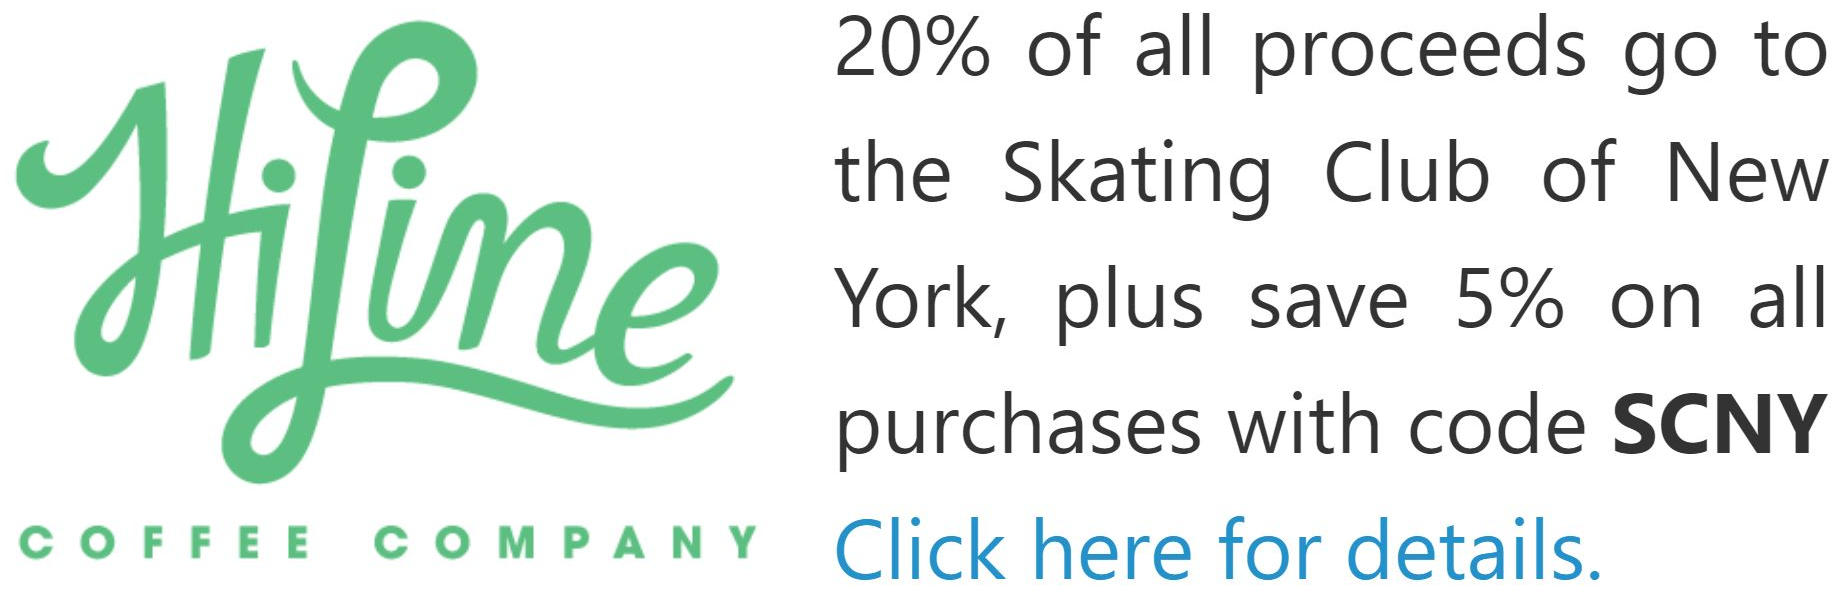 HiLine Coffee supports SCNY skaters!